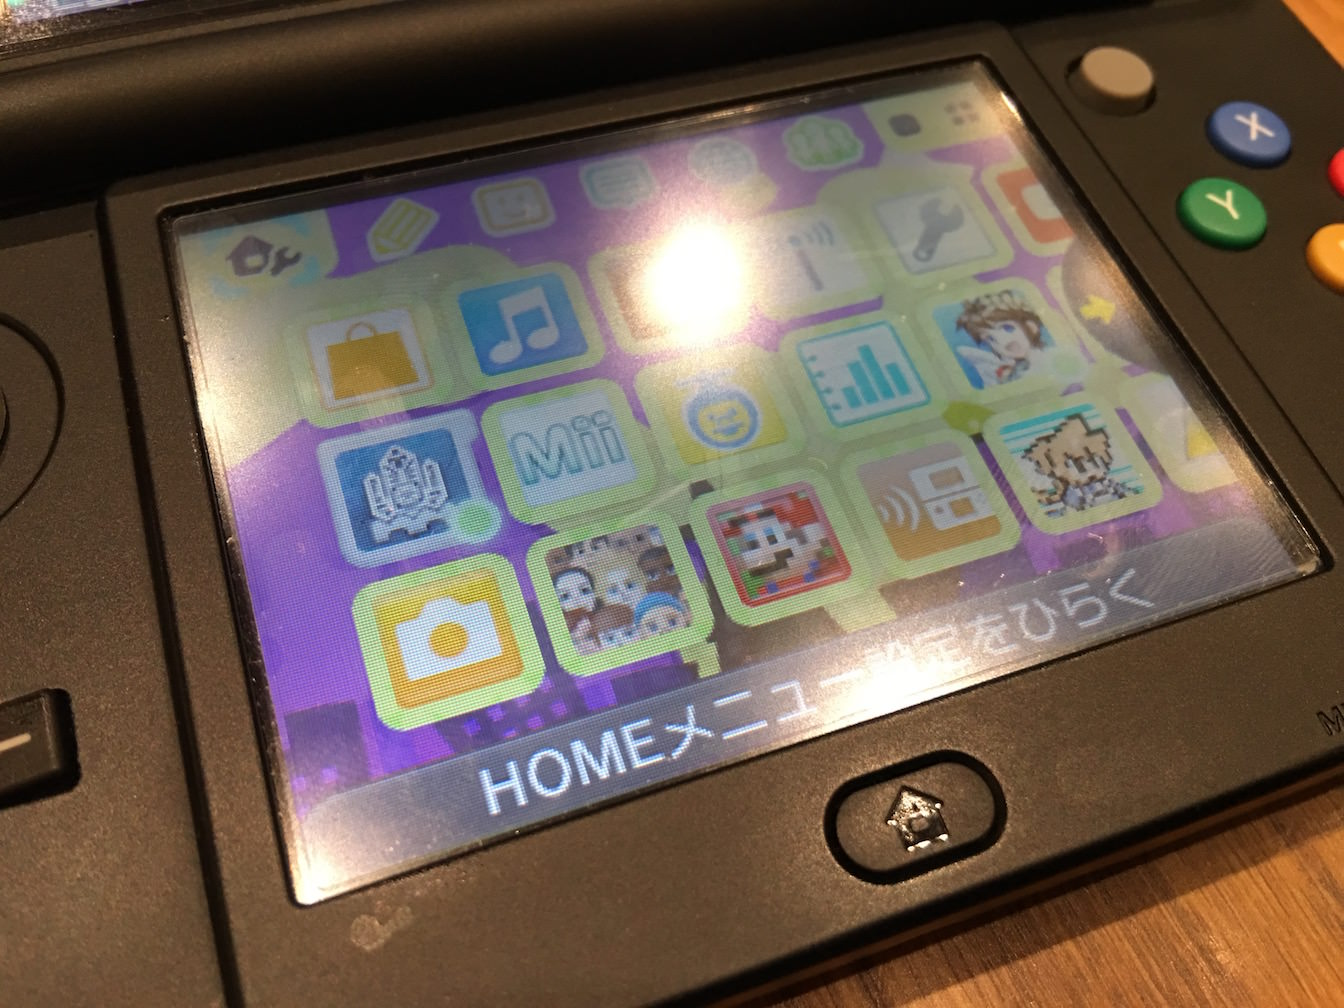 Review of zero pita filter for new nintendo 3ds 16